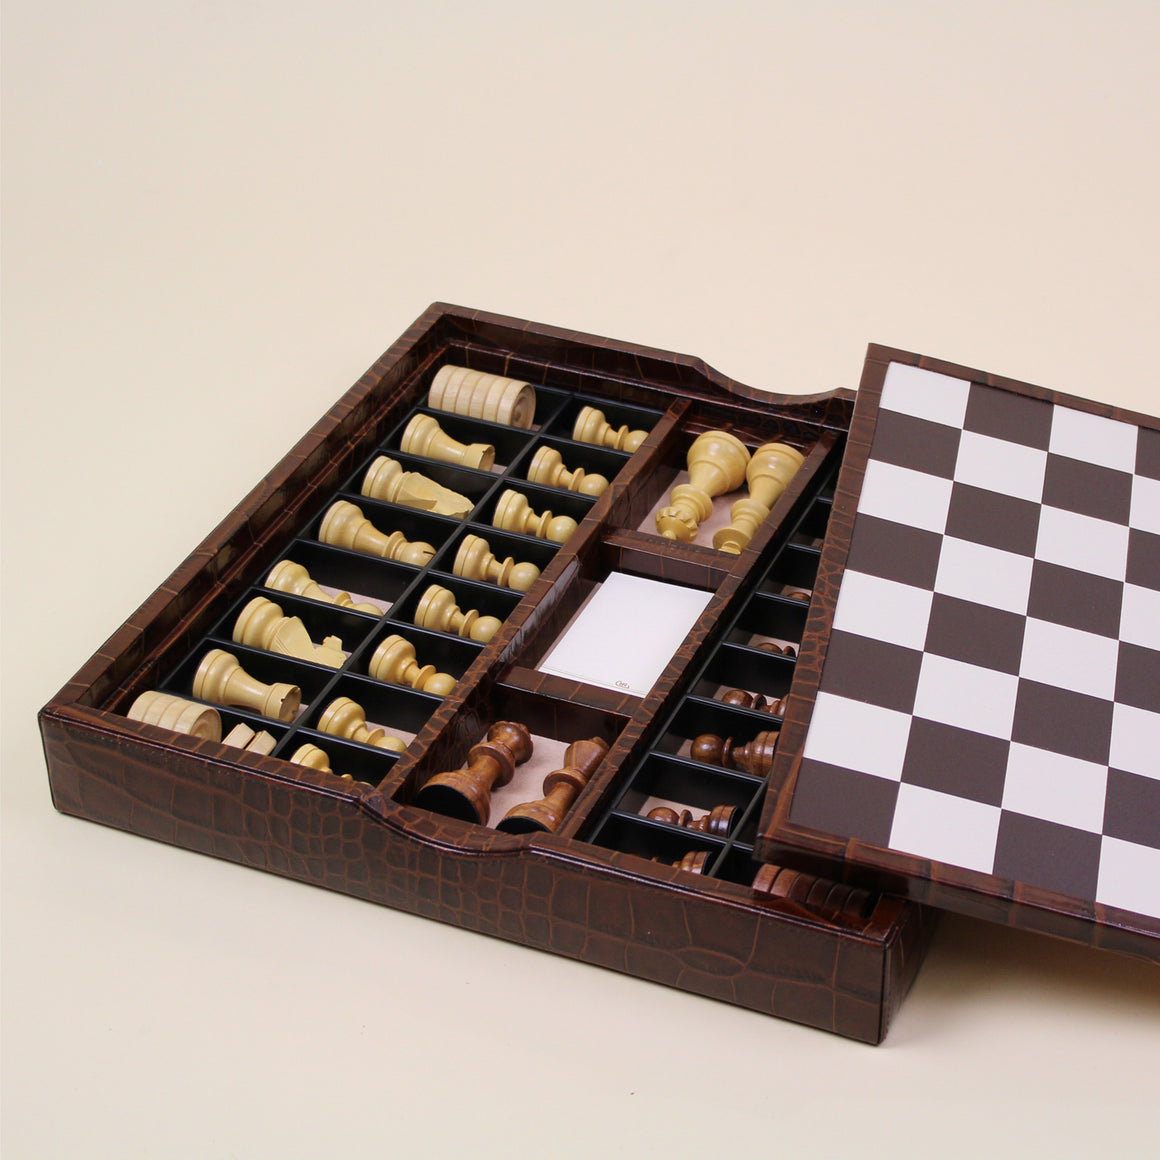 BROWN LEATHER CHESSBOARD